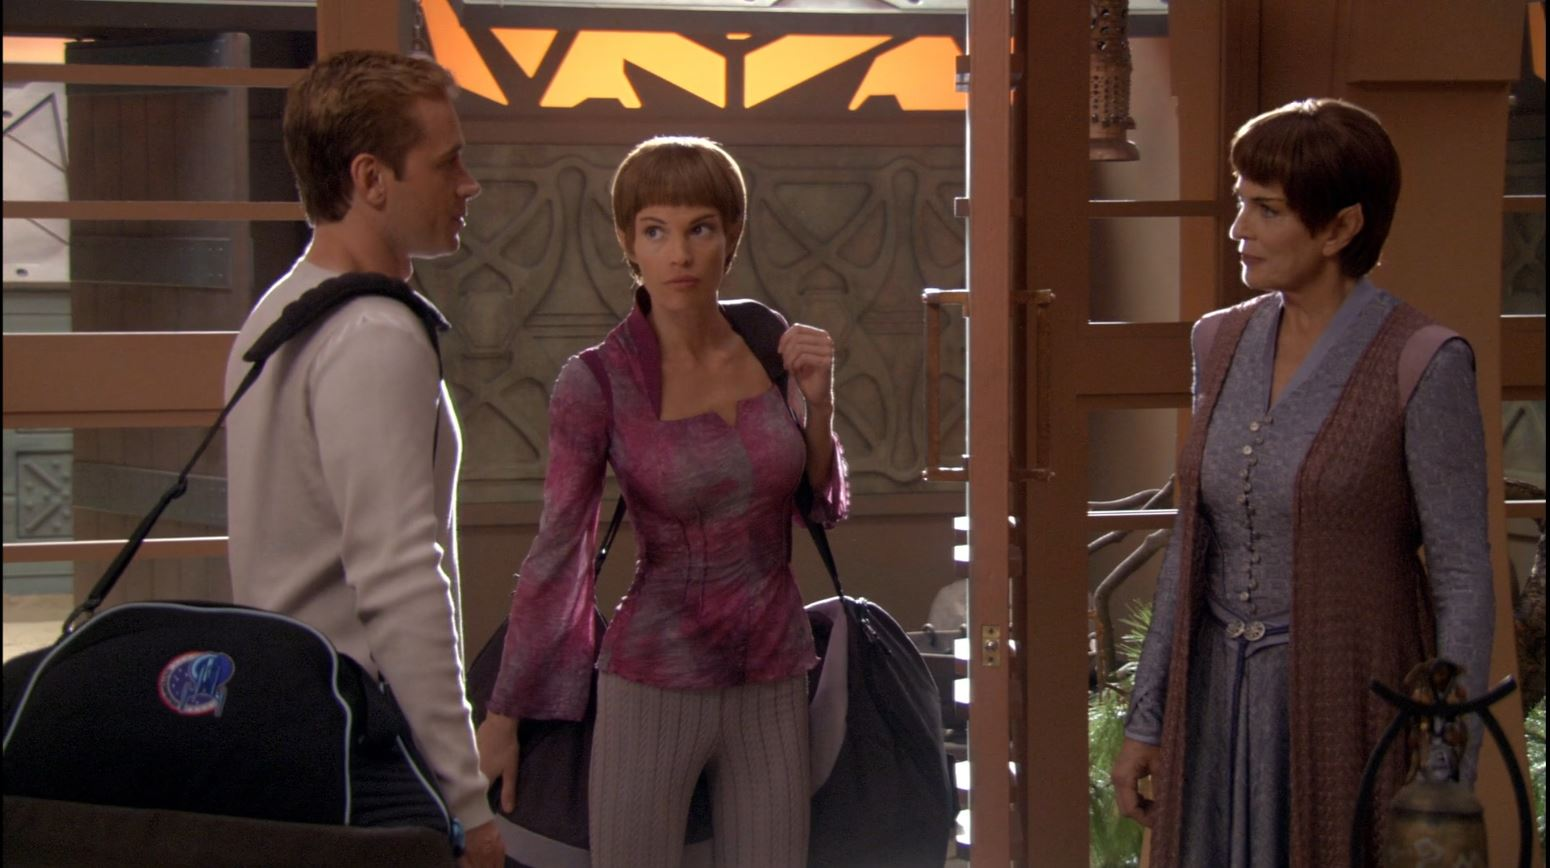 Enterprise season 4 Blu ray review - Tucker, T'Pol and her mother